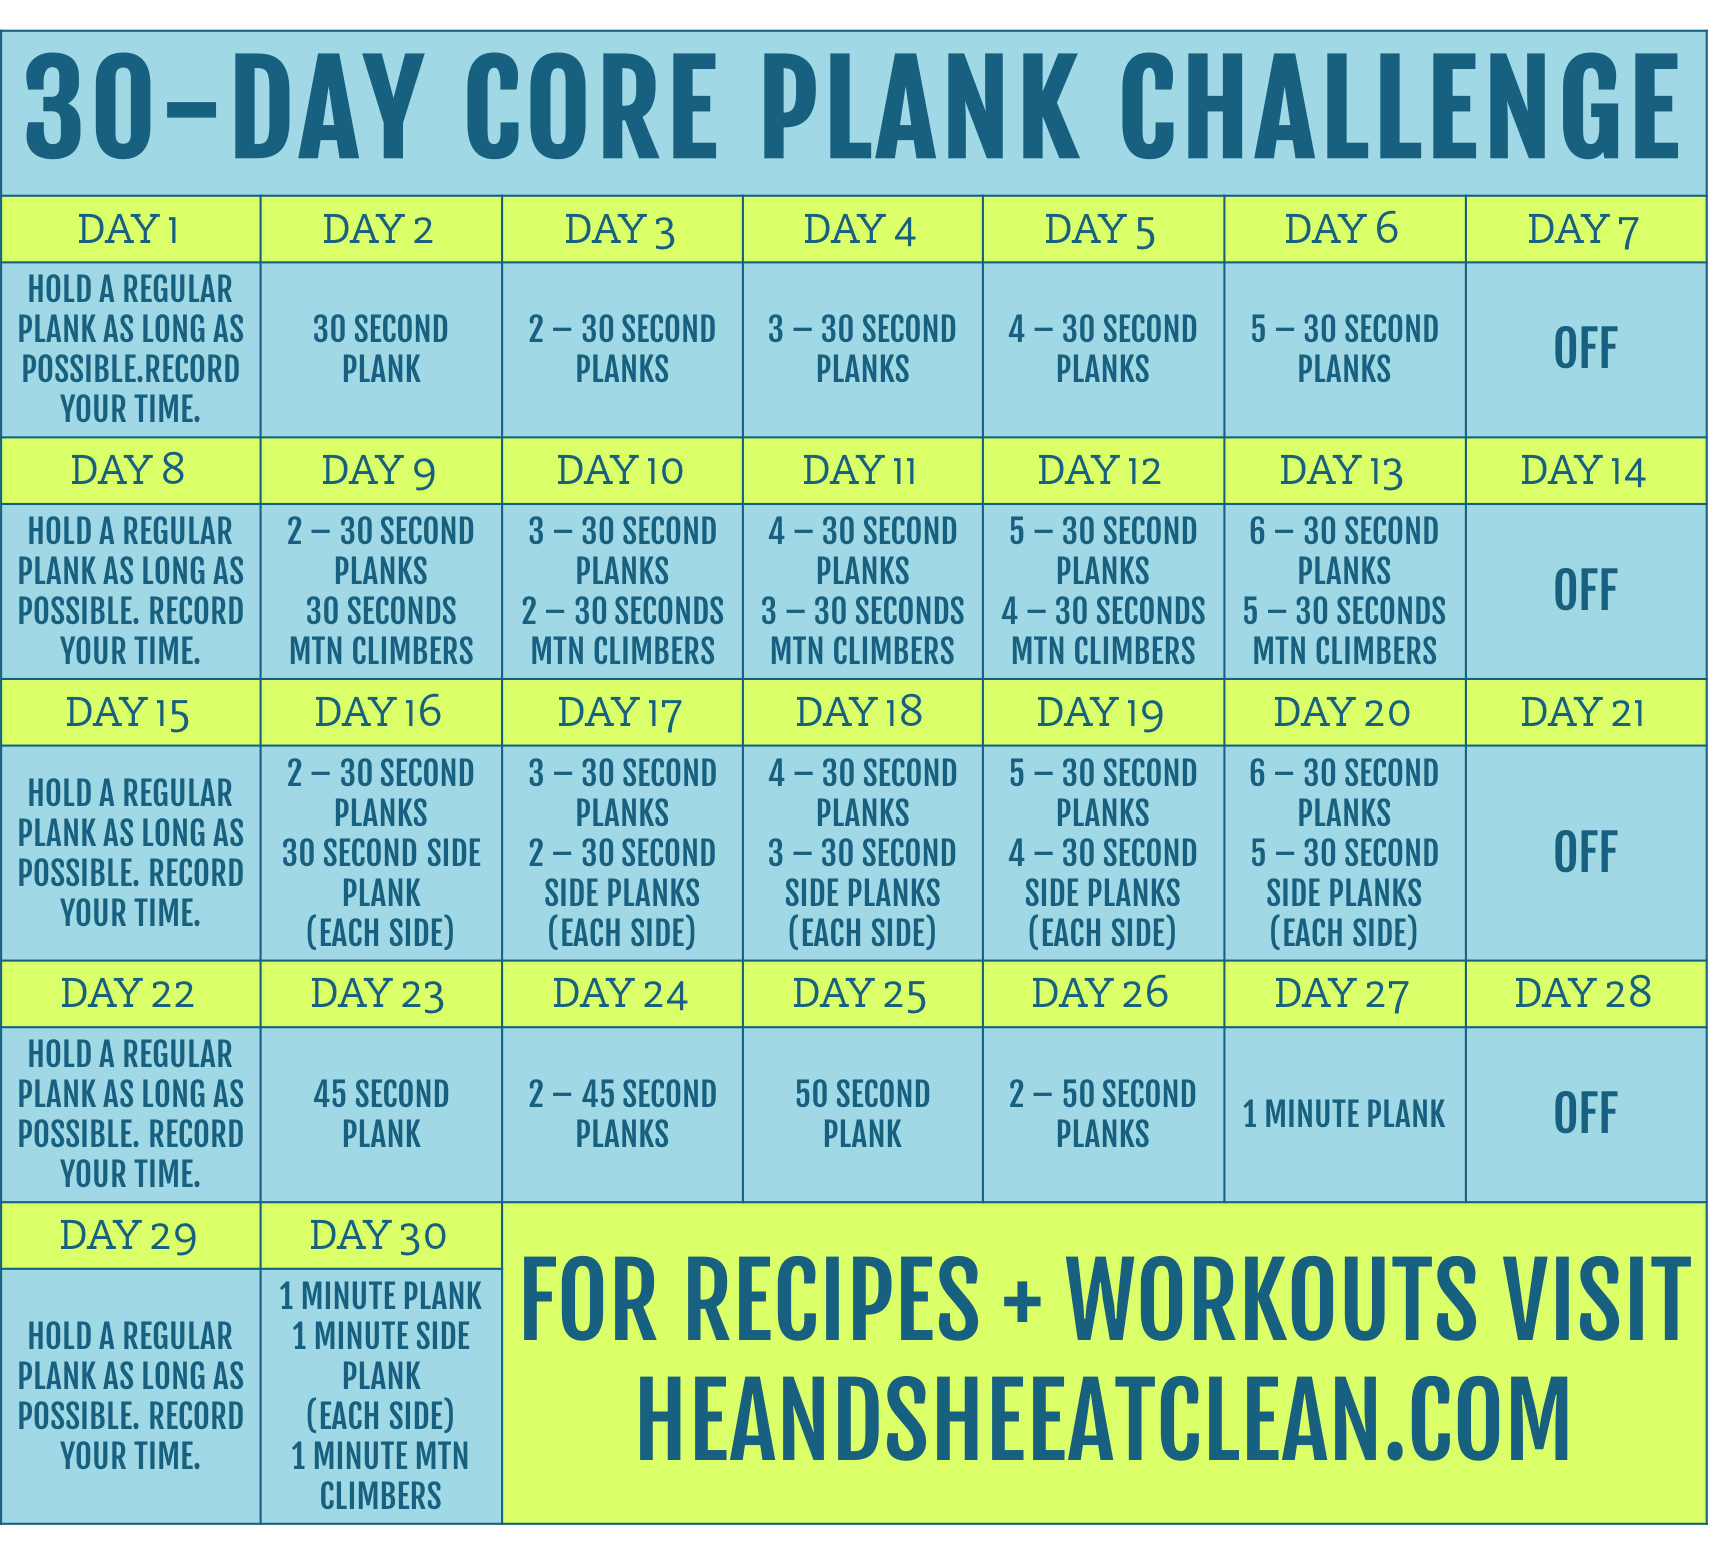 30-Day Core Plank Challenge